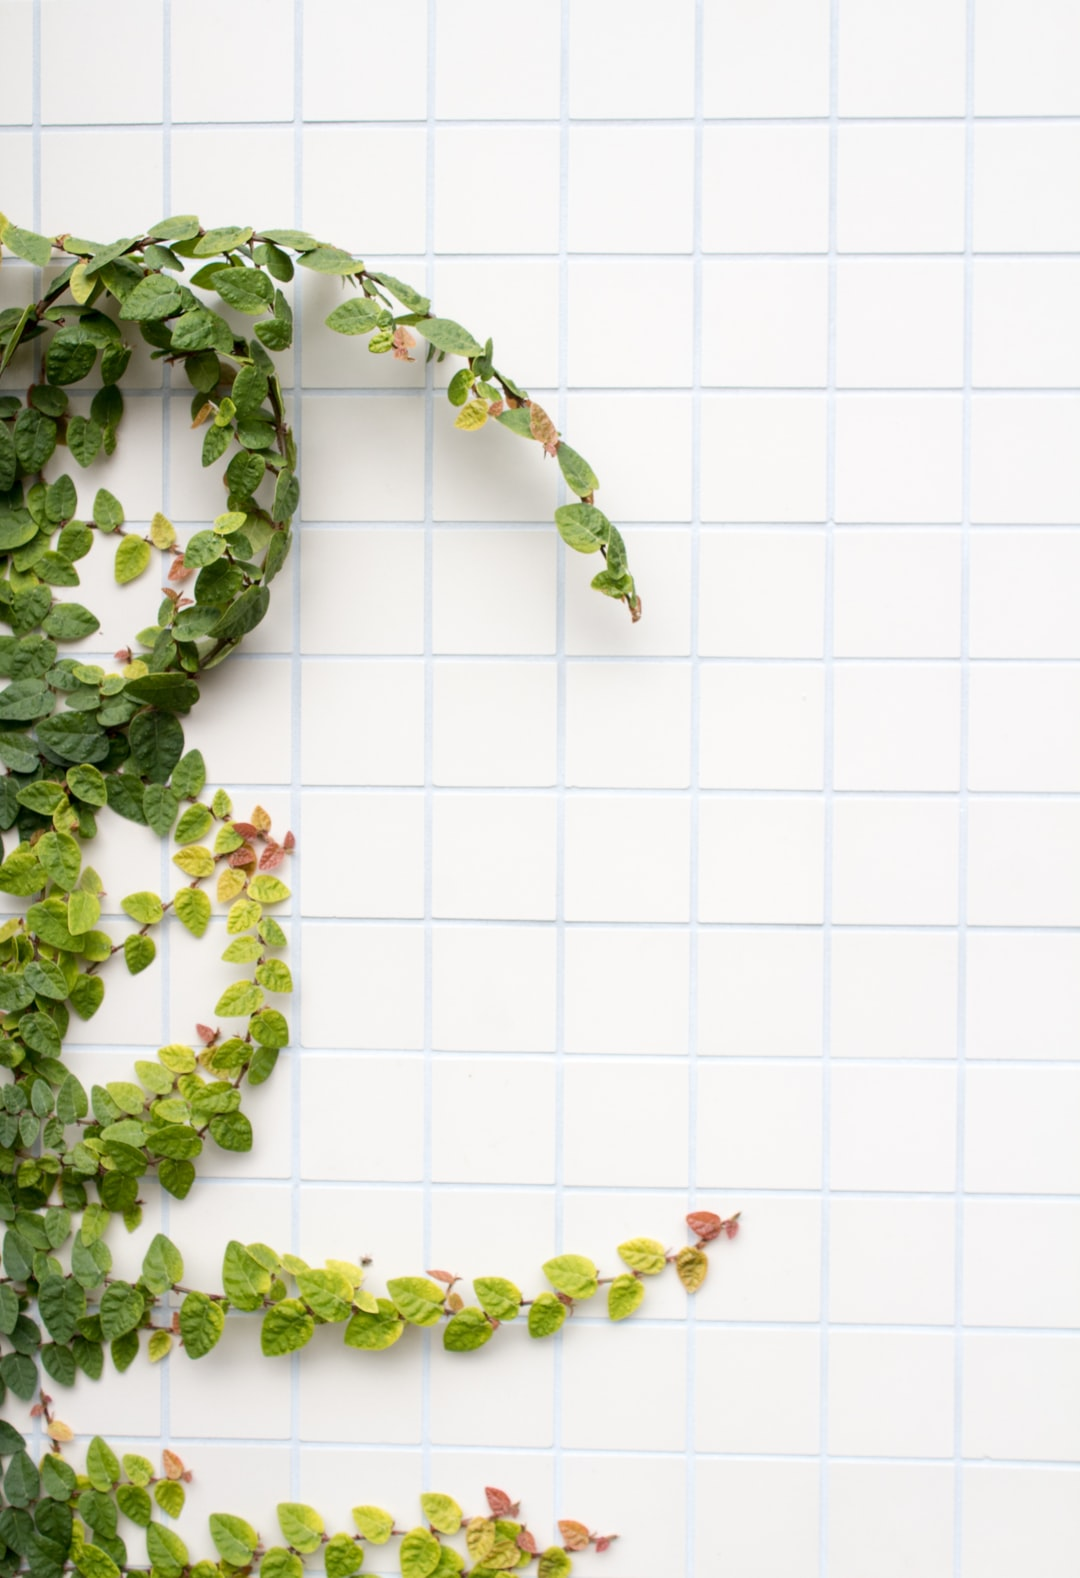 White tiles with a plant